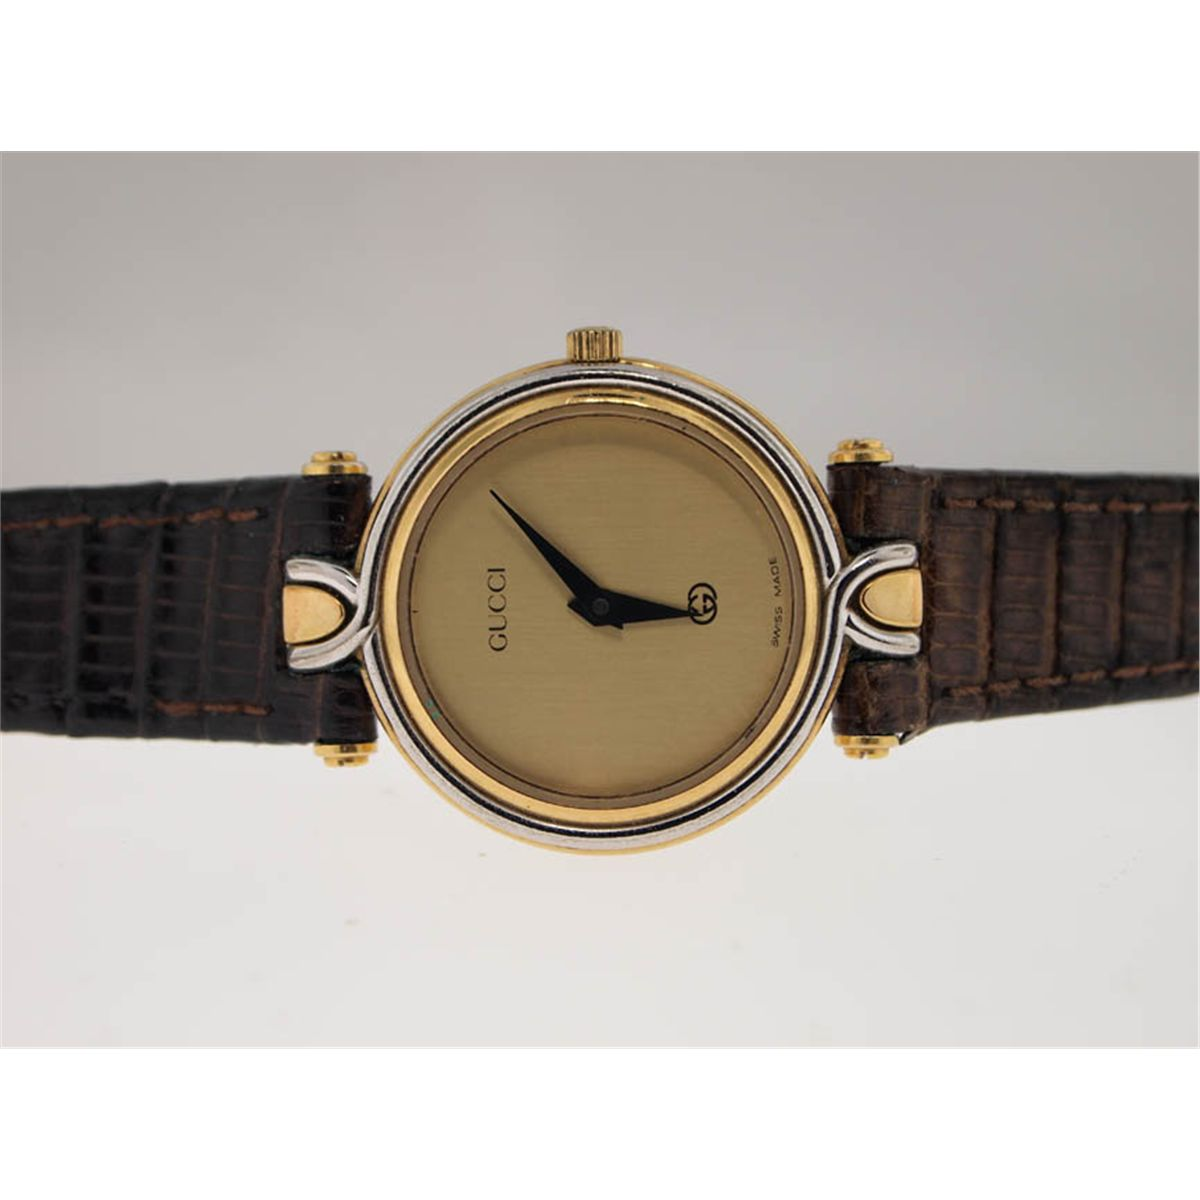 141a3a9f2 Image 1 : Gucci Ladies Watch with Leather Strap.